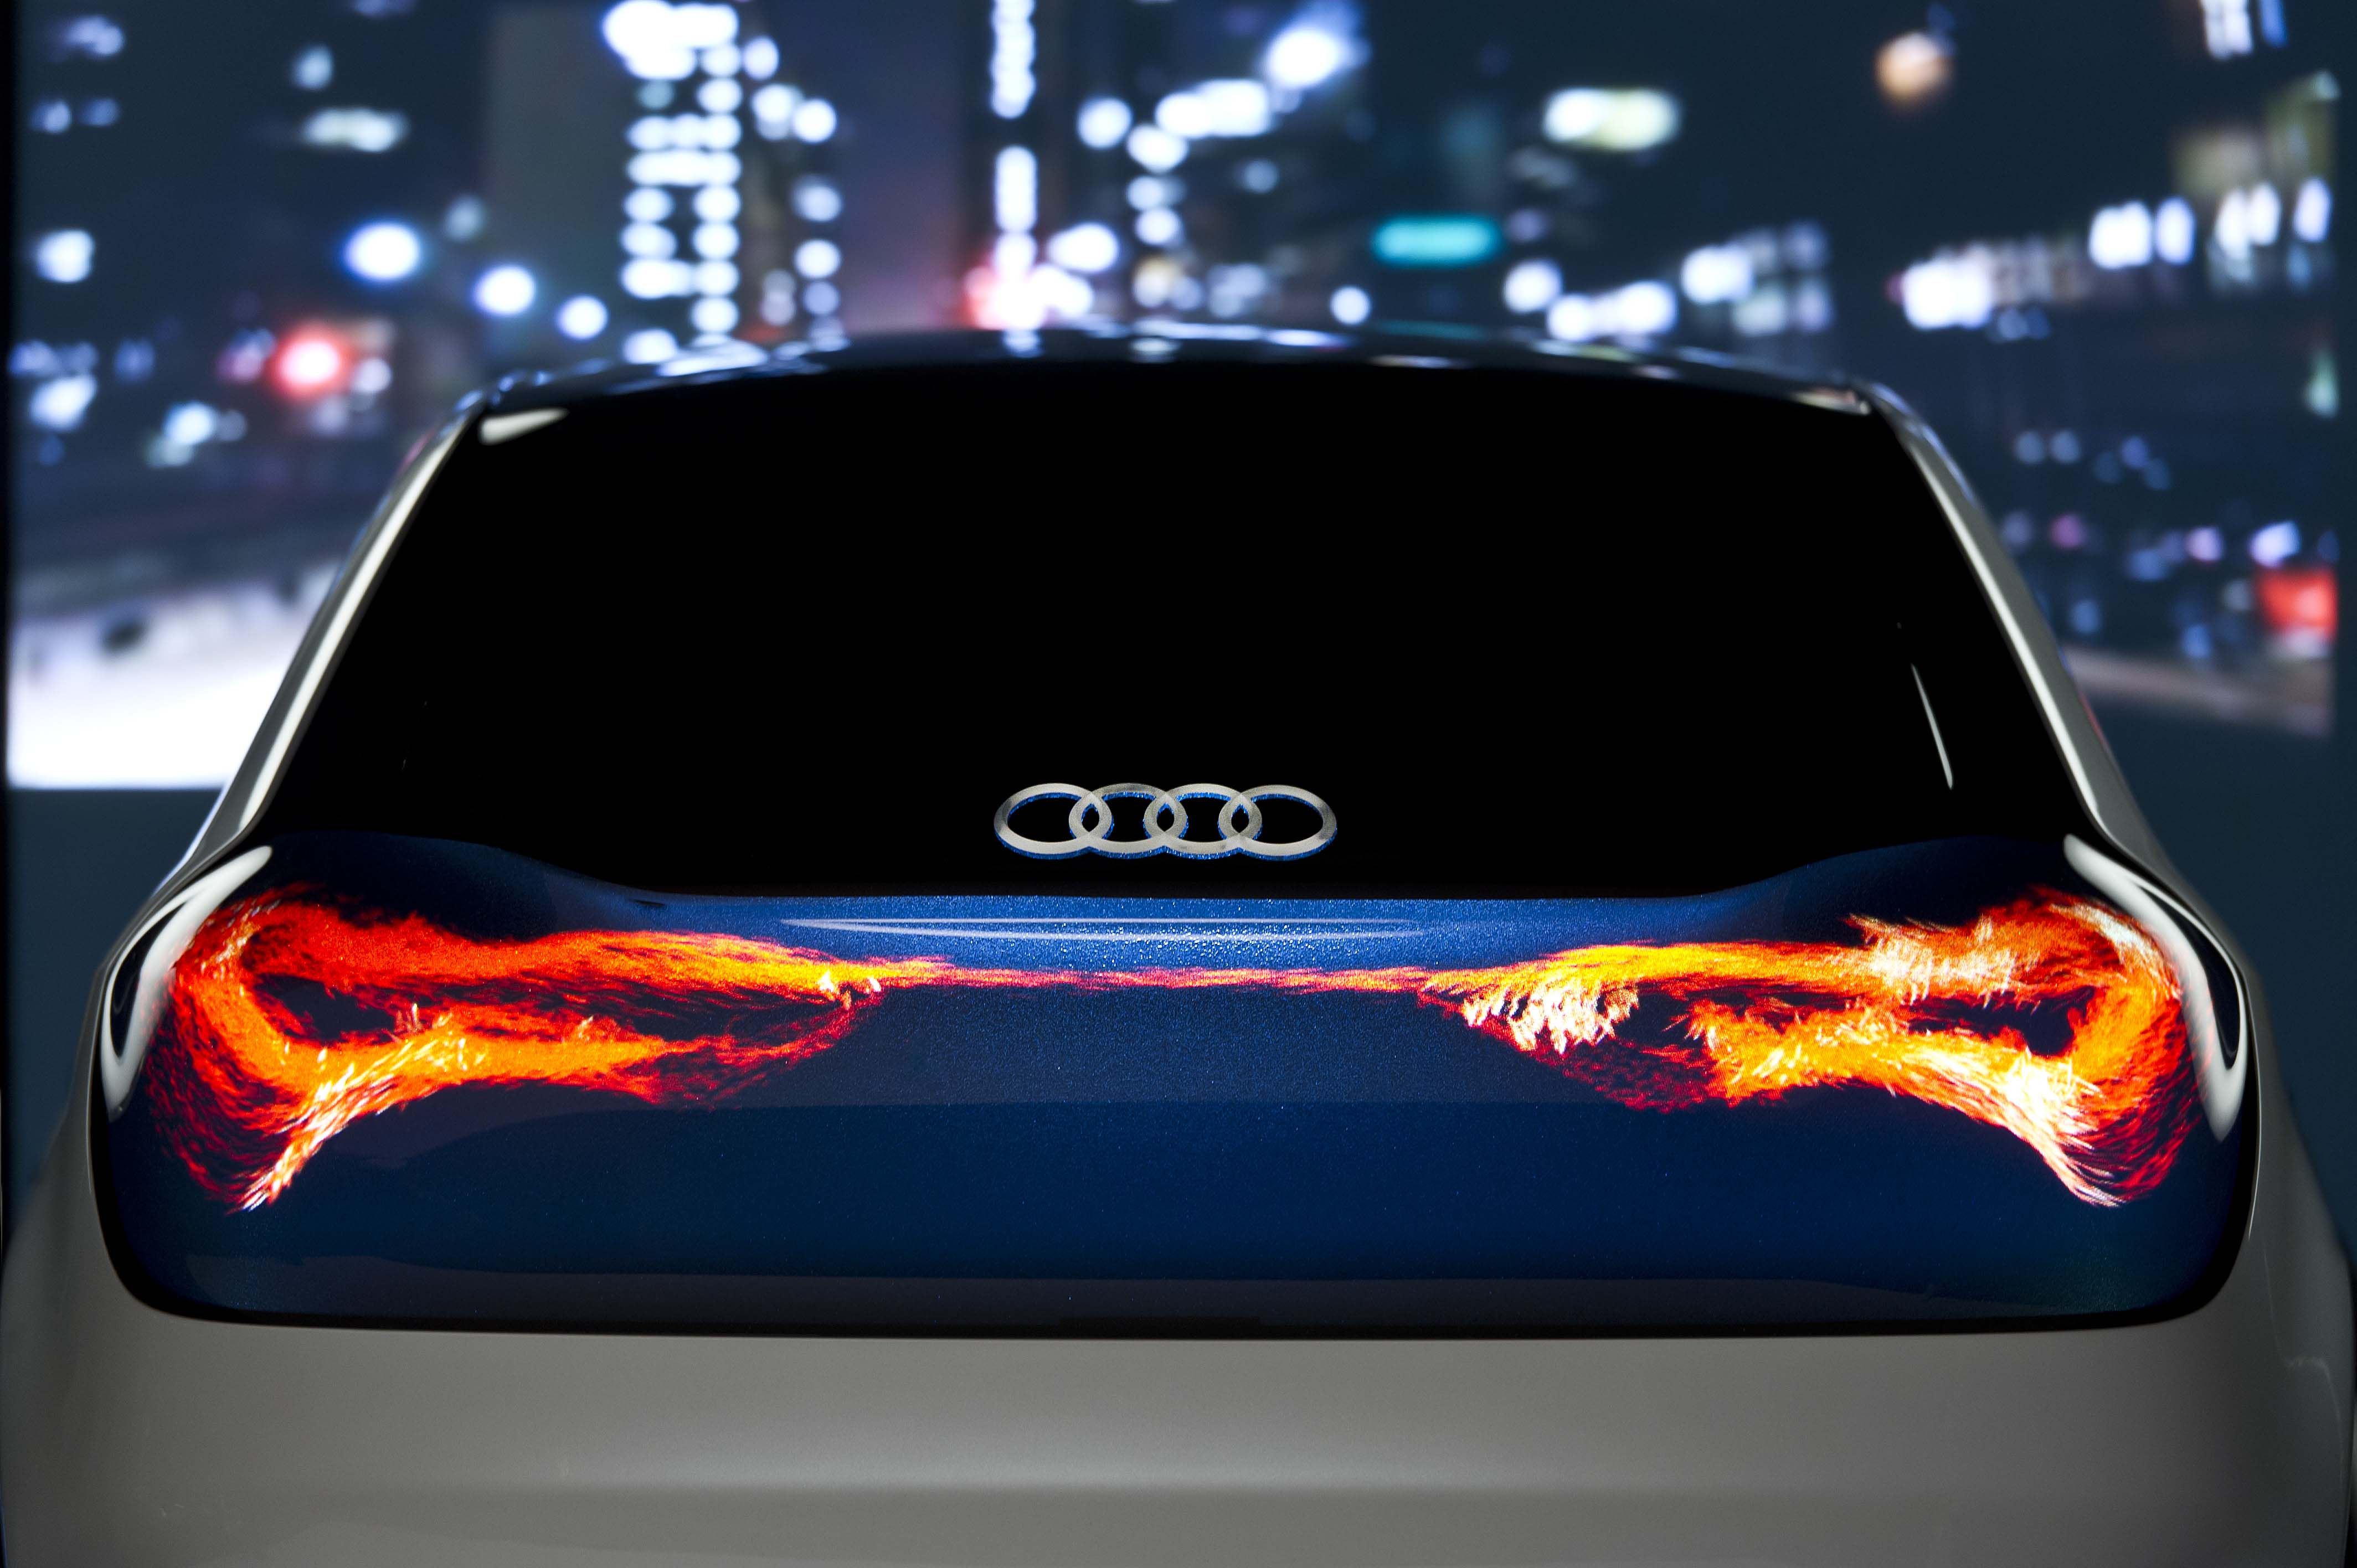 Audi 39 s swarm oled concept is beautiful but illegal too pakwheels blog for Illegal to have interior car lights on